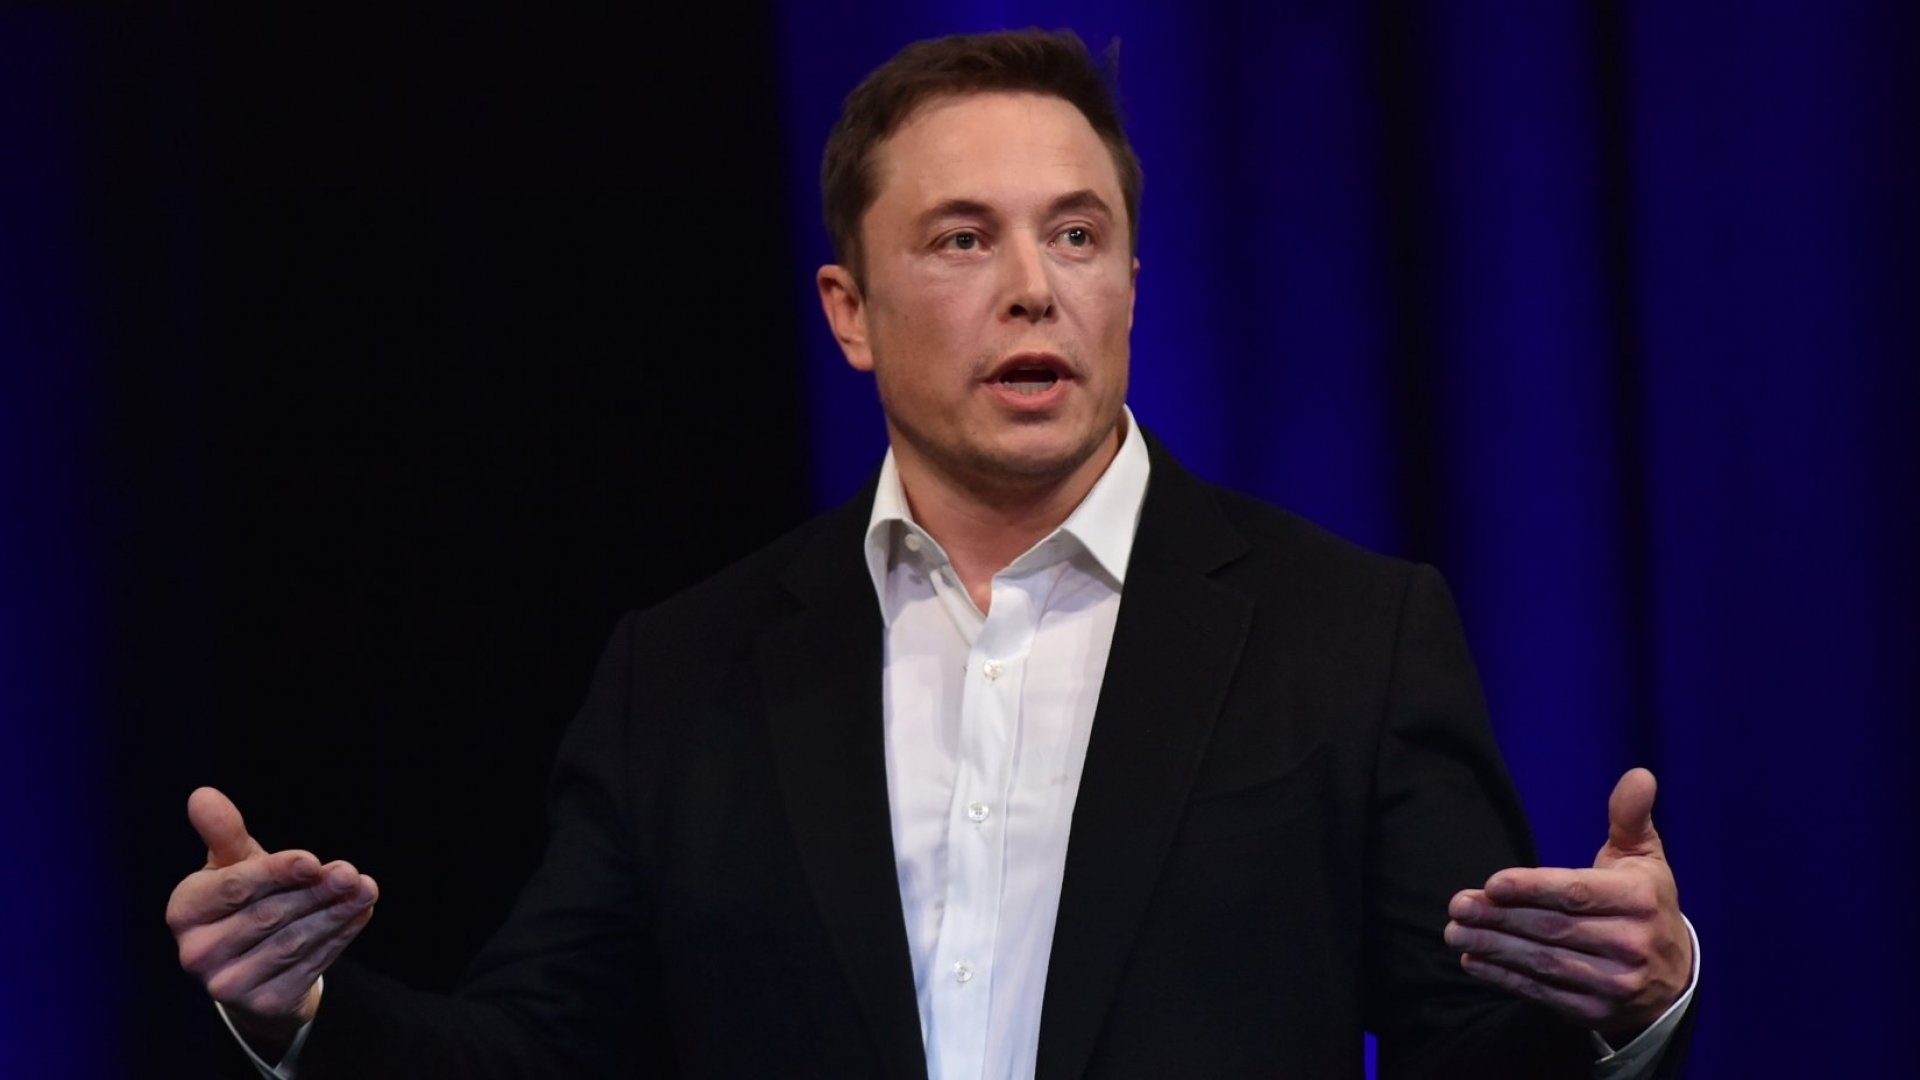 4 Reasons Why Ambitious Entrepreneurs Like Elon Musk and Jeff Bezos Succeed Where Others Fail